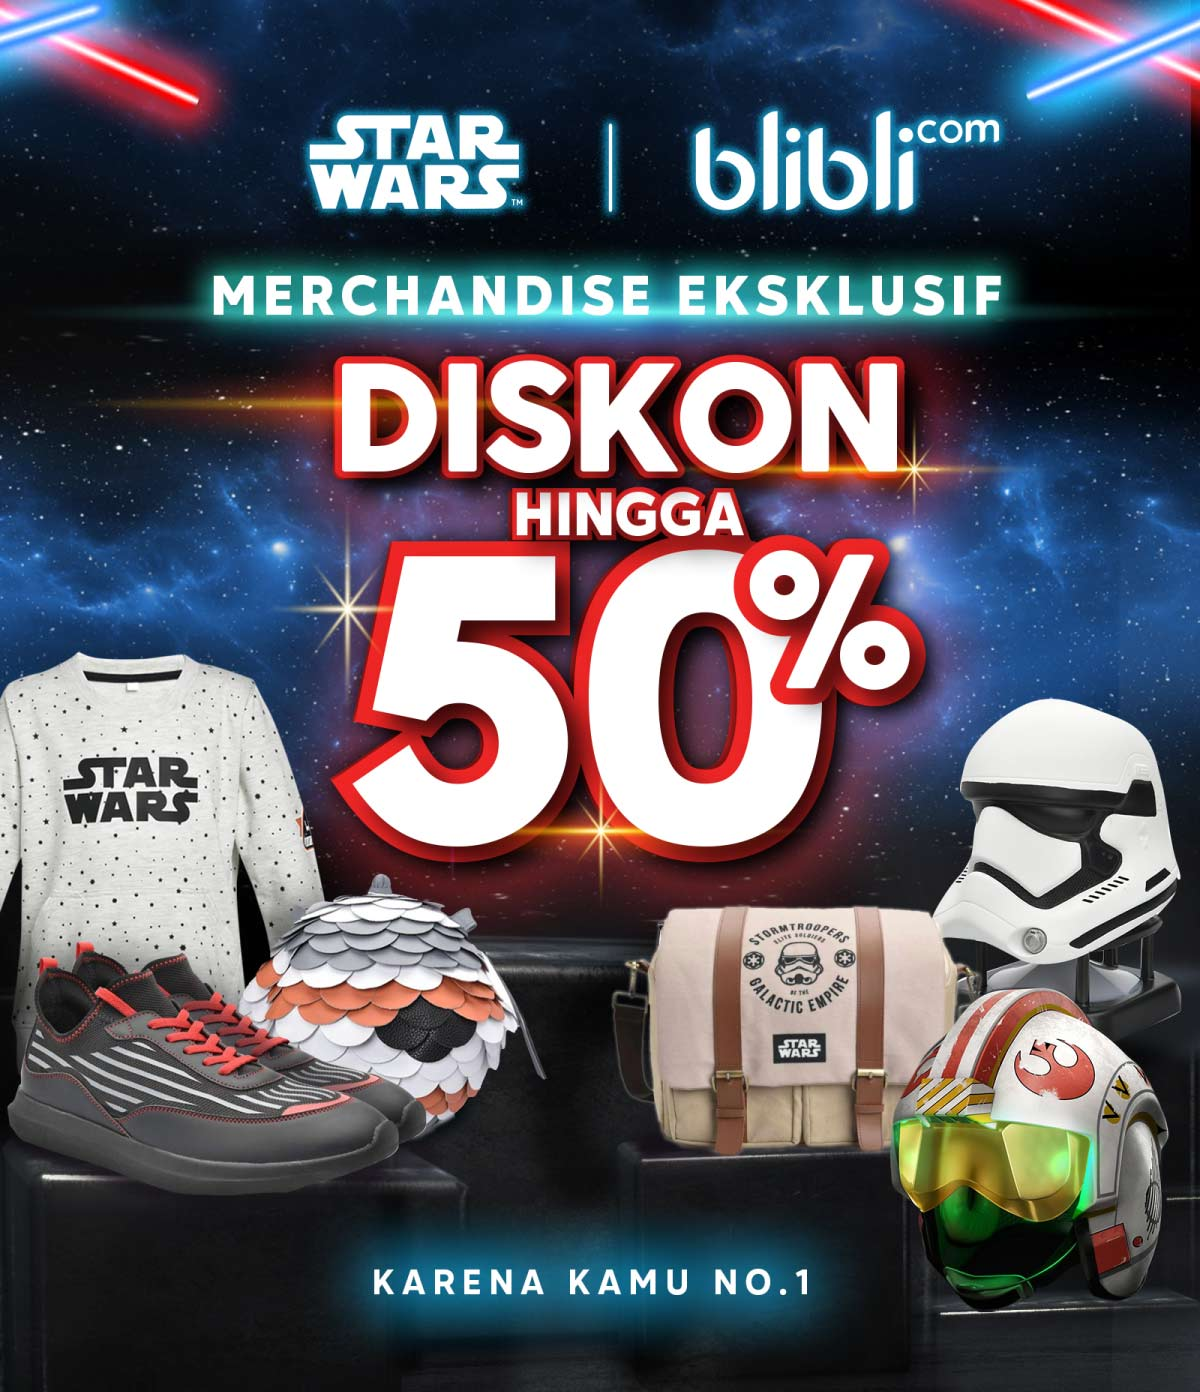 Star Wars Galaxy of Epic Deals